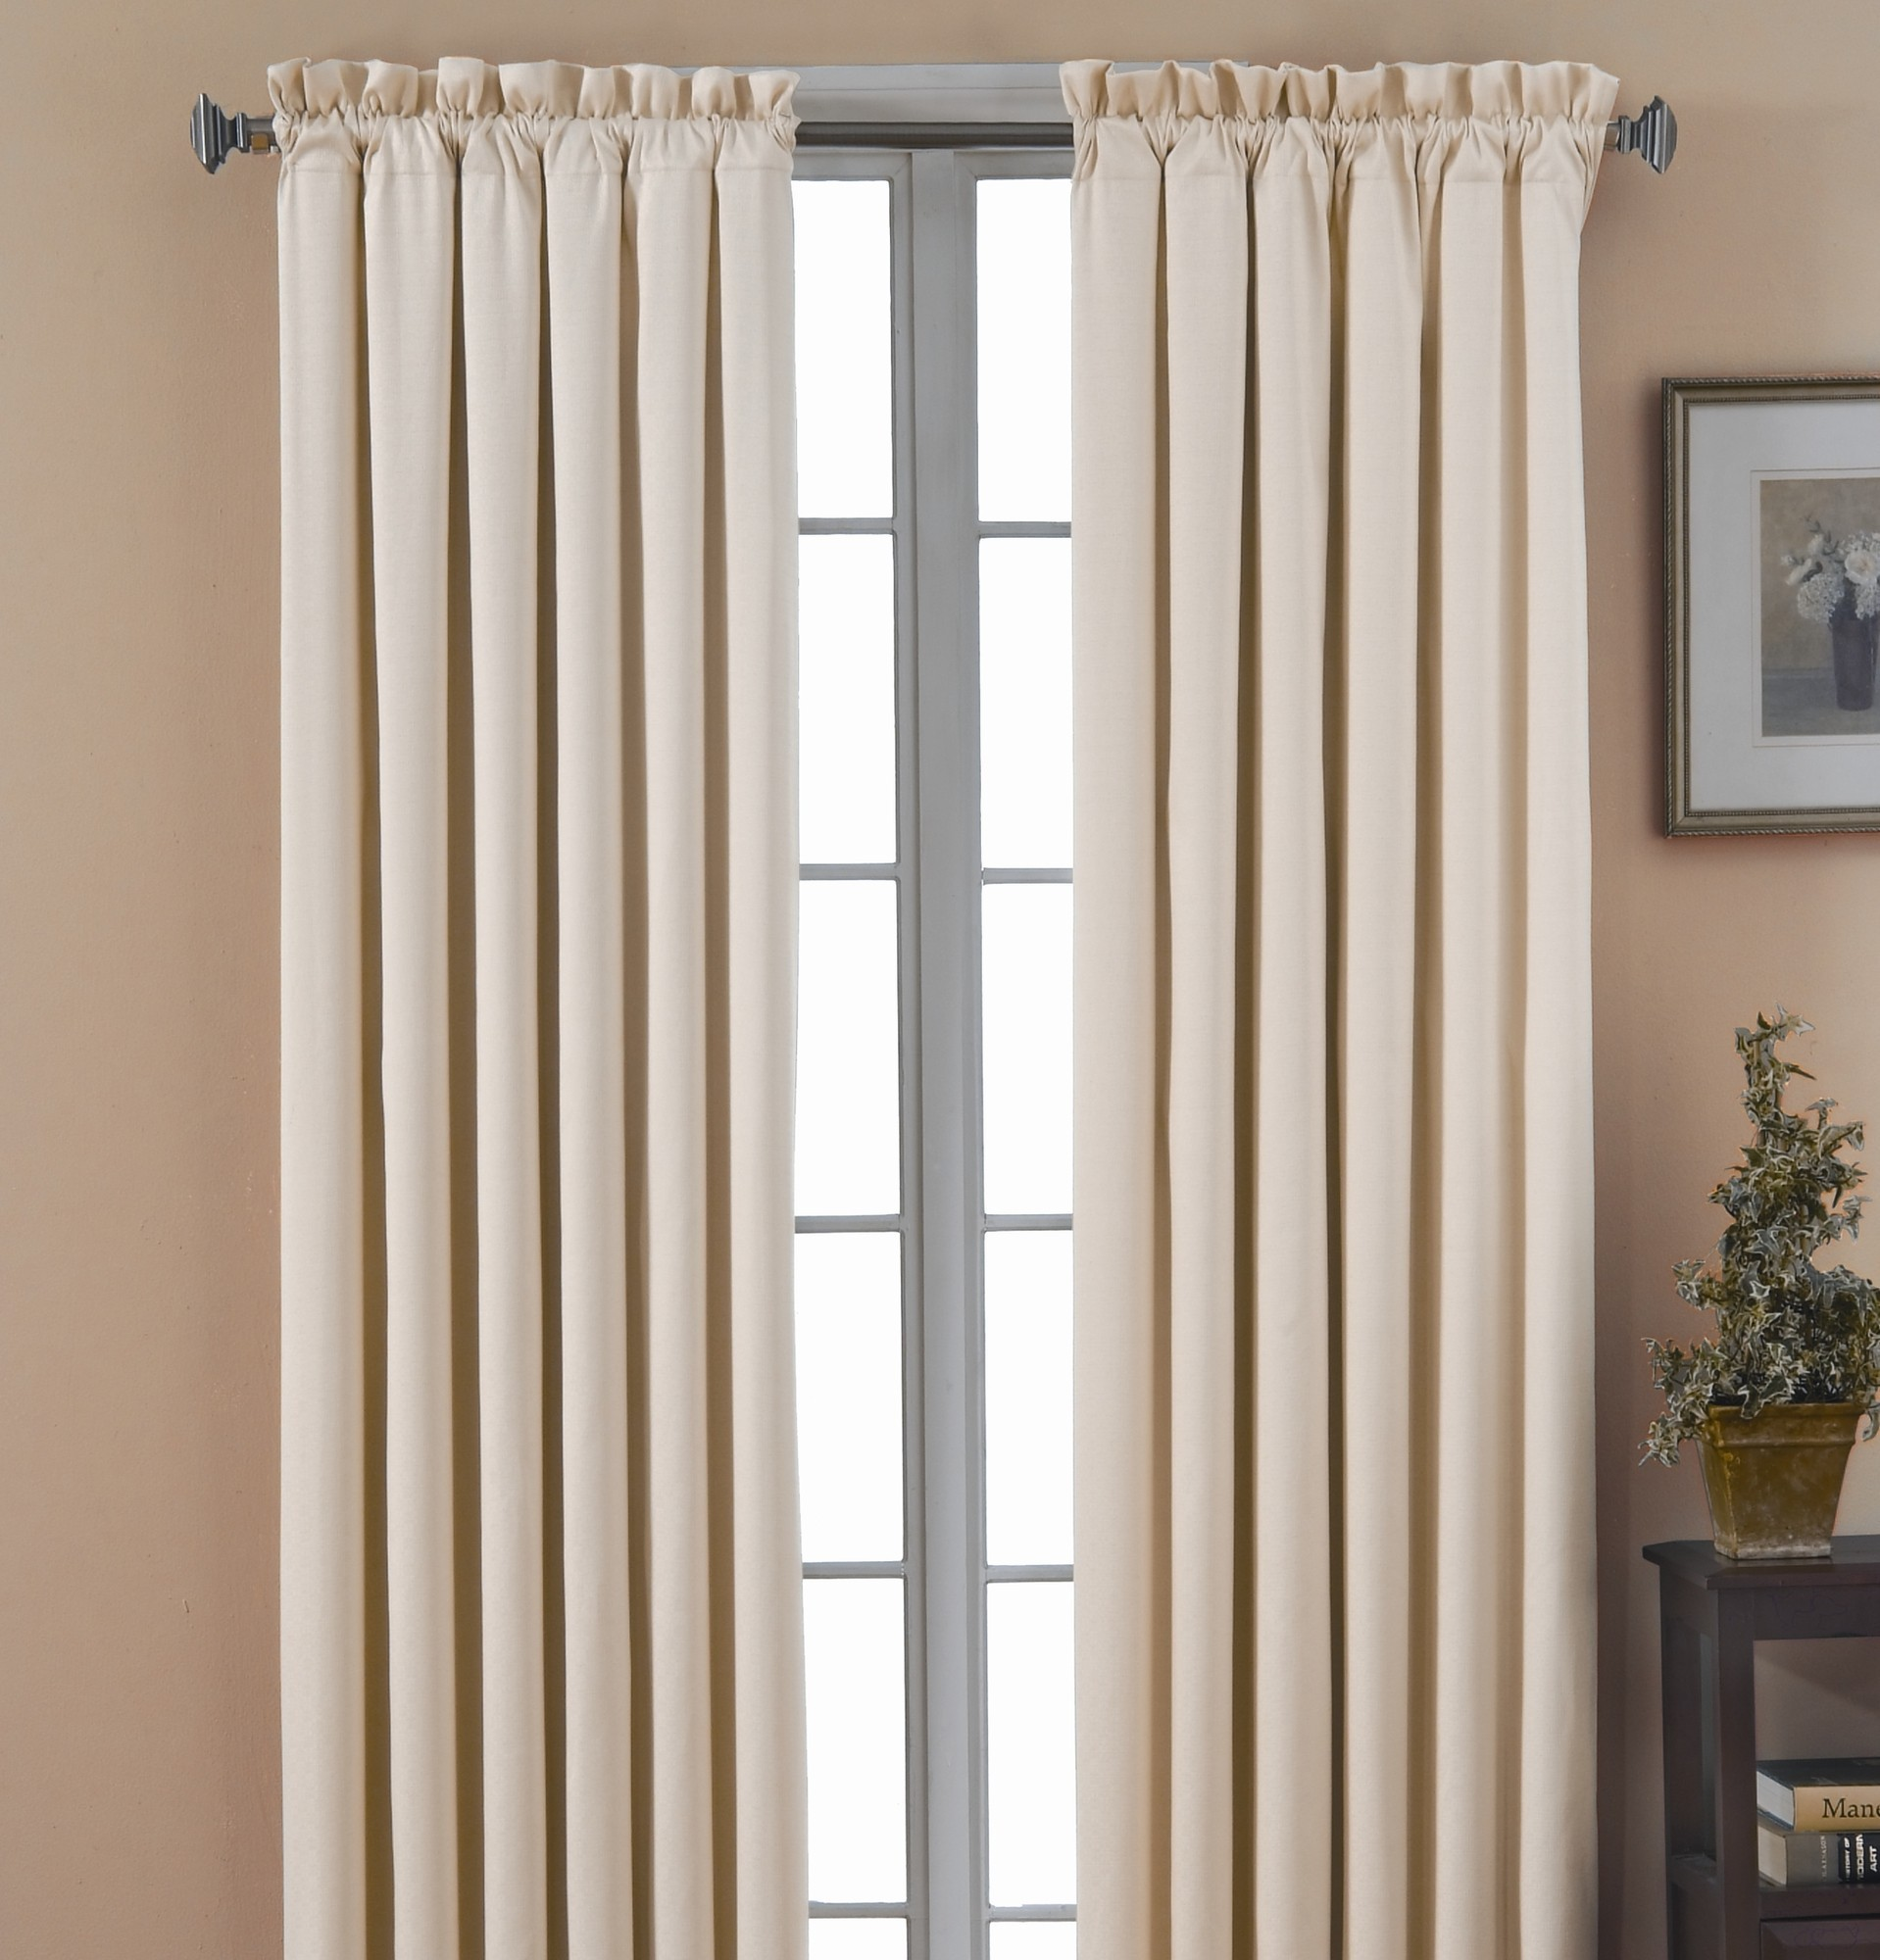 target curtain curtains uncategorized trends and pics fascinating liner of shower blackout blinds west tfile popular elm